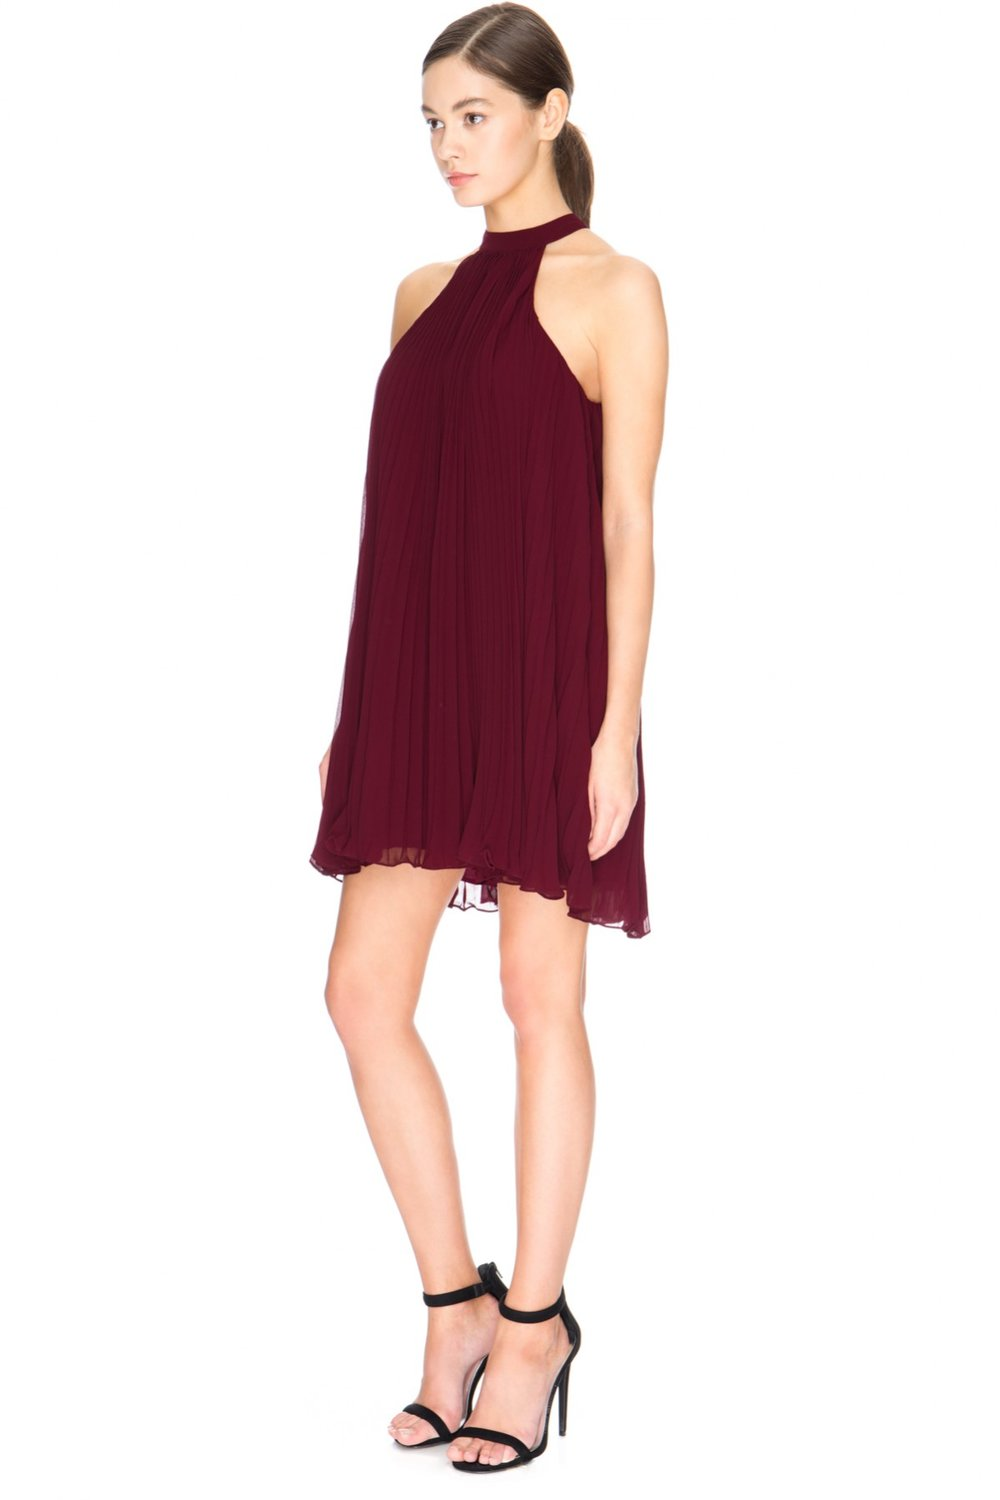 Shop Keepsake Clarity Mini Dress.